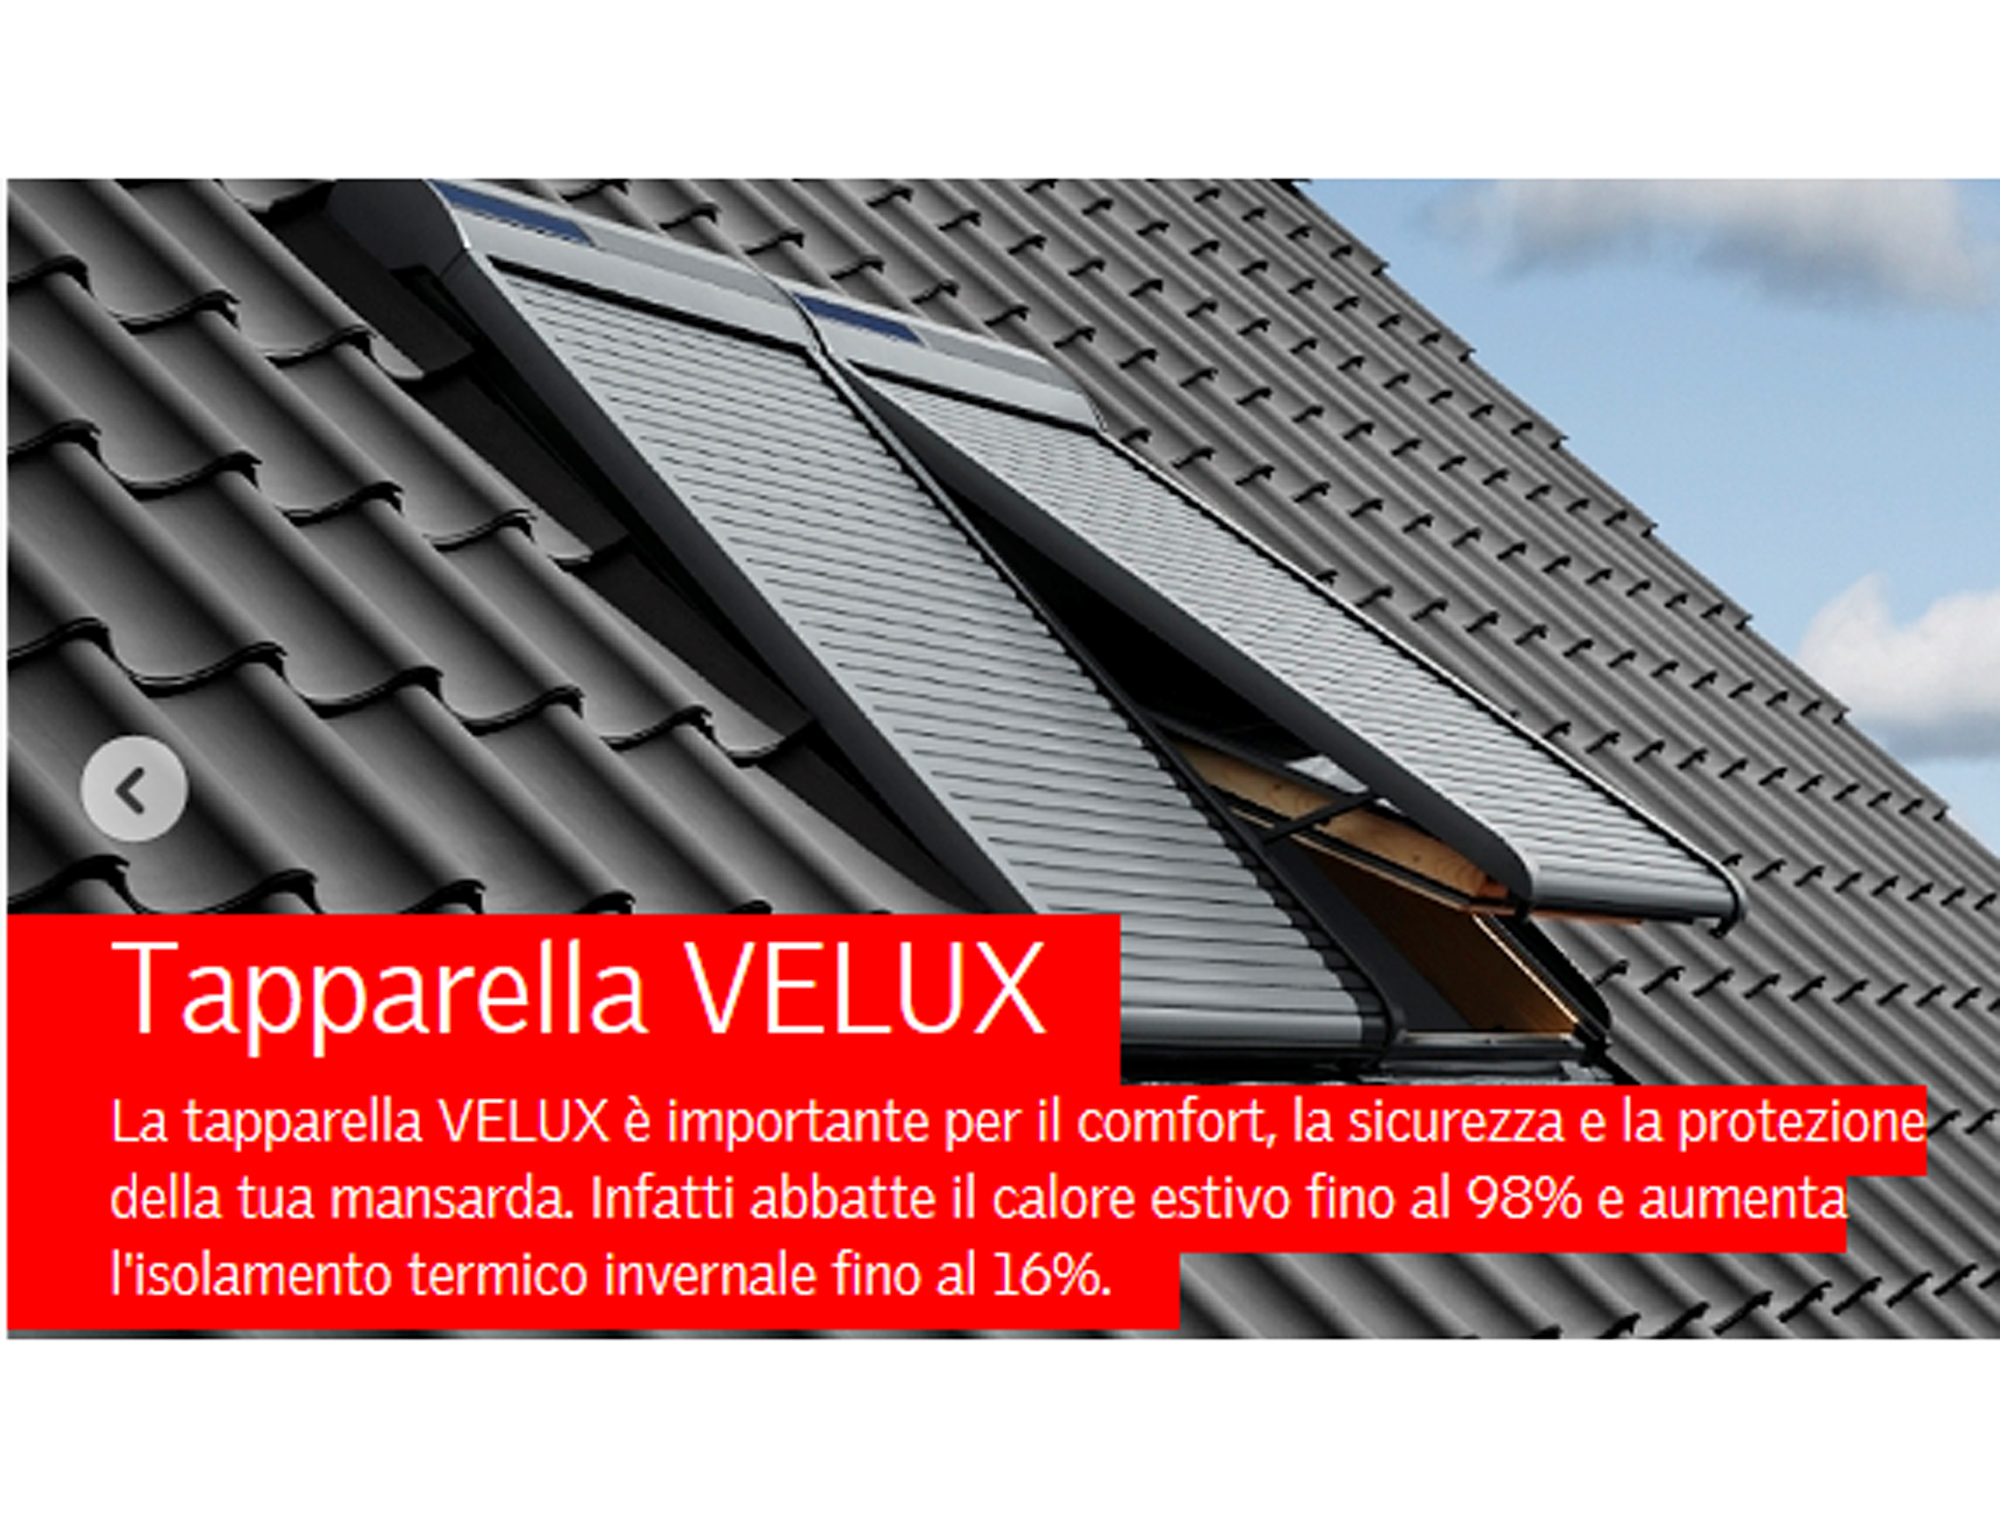 Accessori velux avvolgibili e tende tende parasole for Finestre velux tende